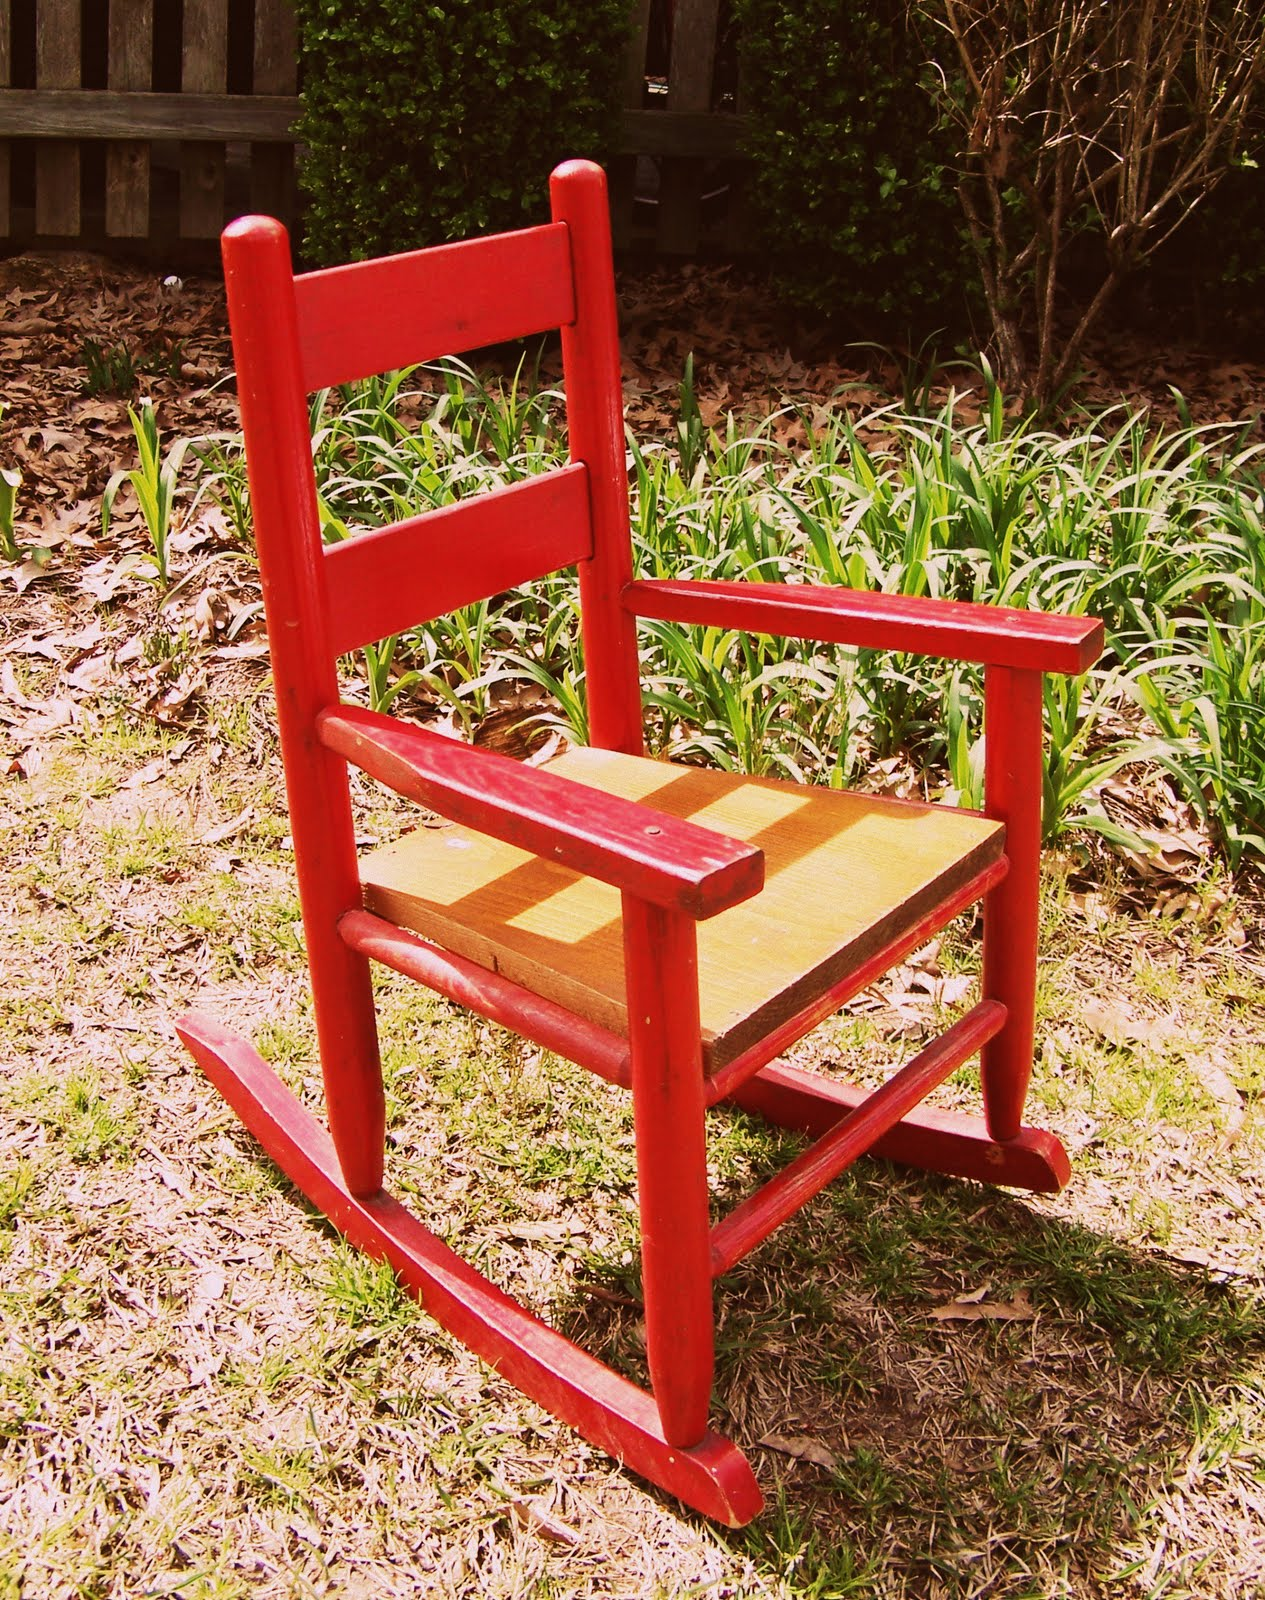 Miraculous Deannas Corner My Little Red Rocking Chair Part 1 Ncnpc Chair Design For Home Ncnpcorg